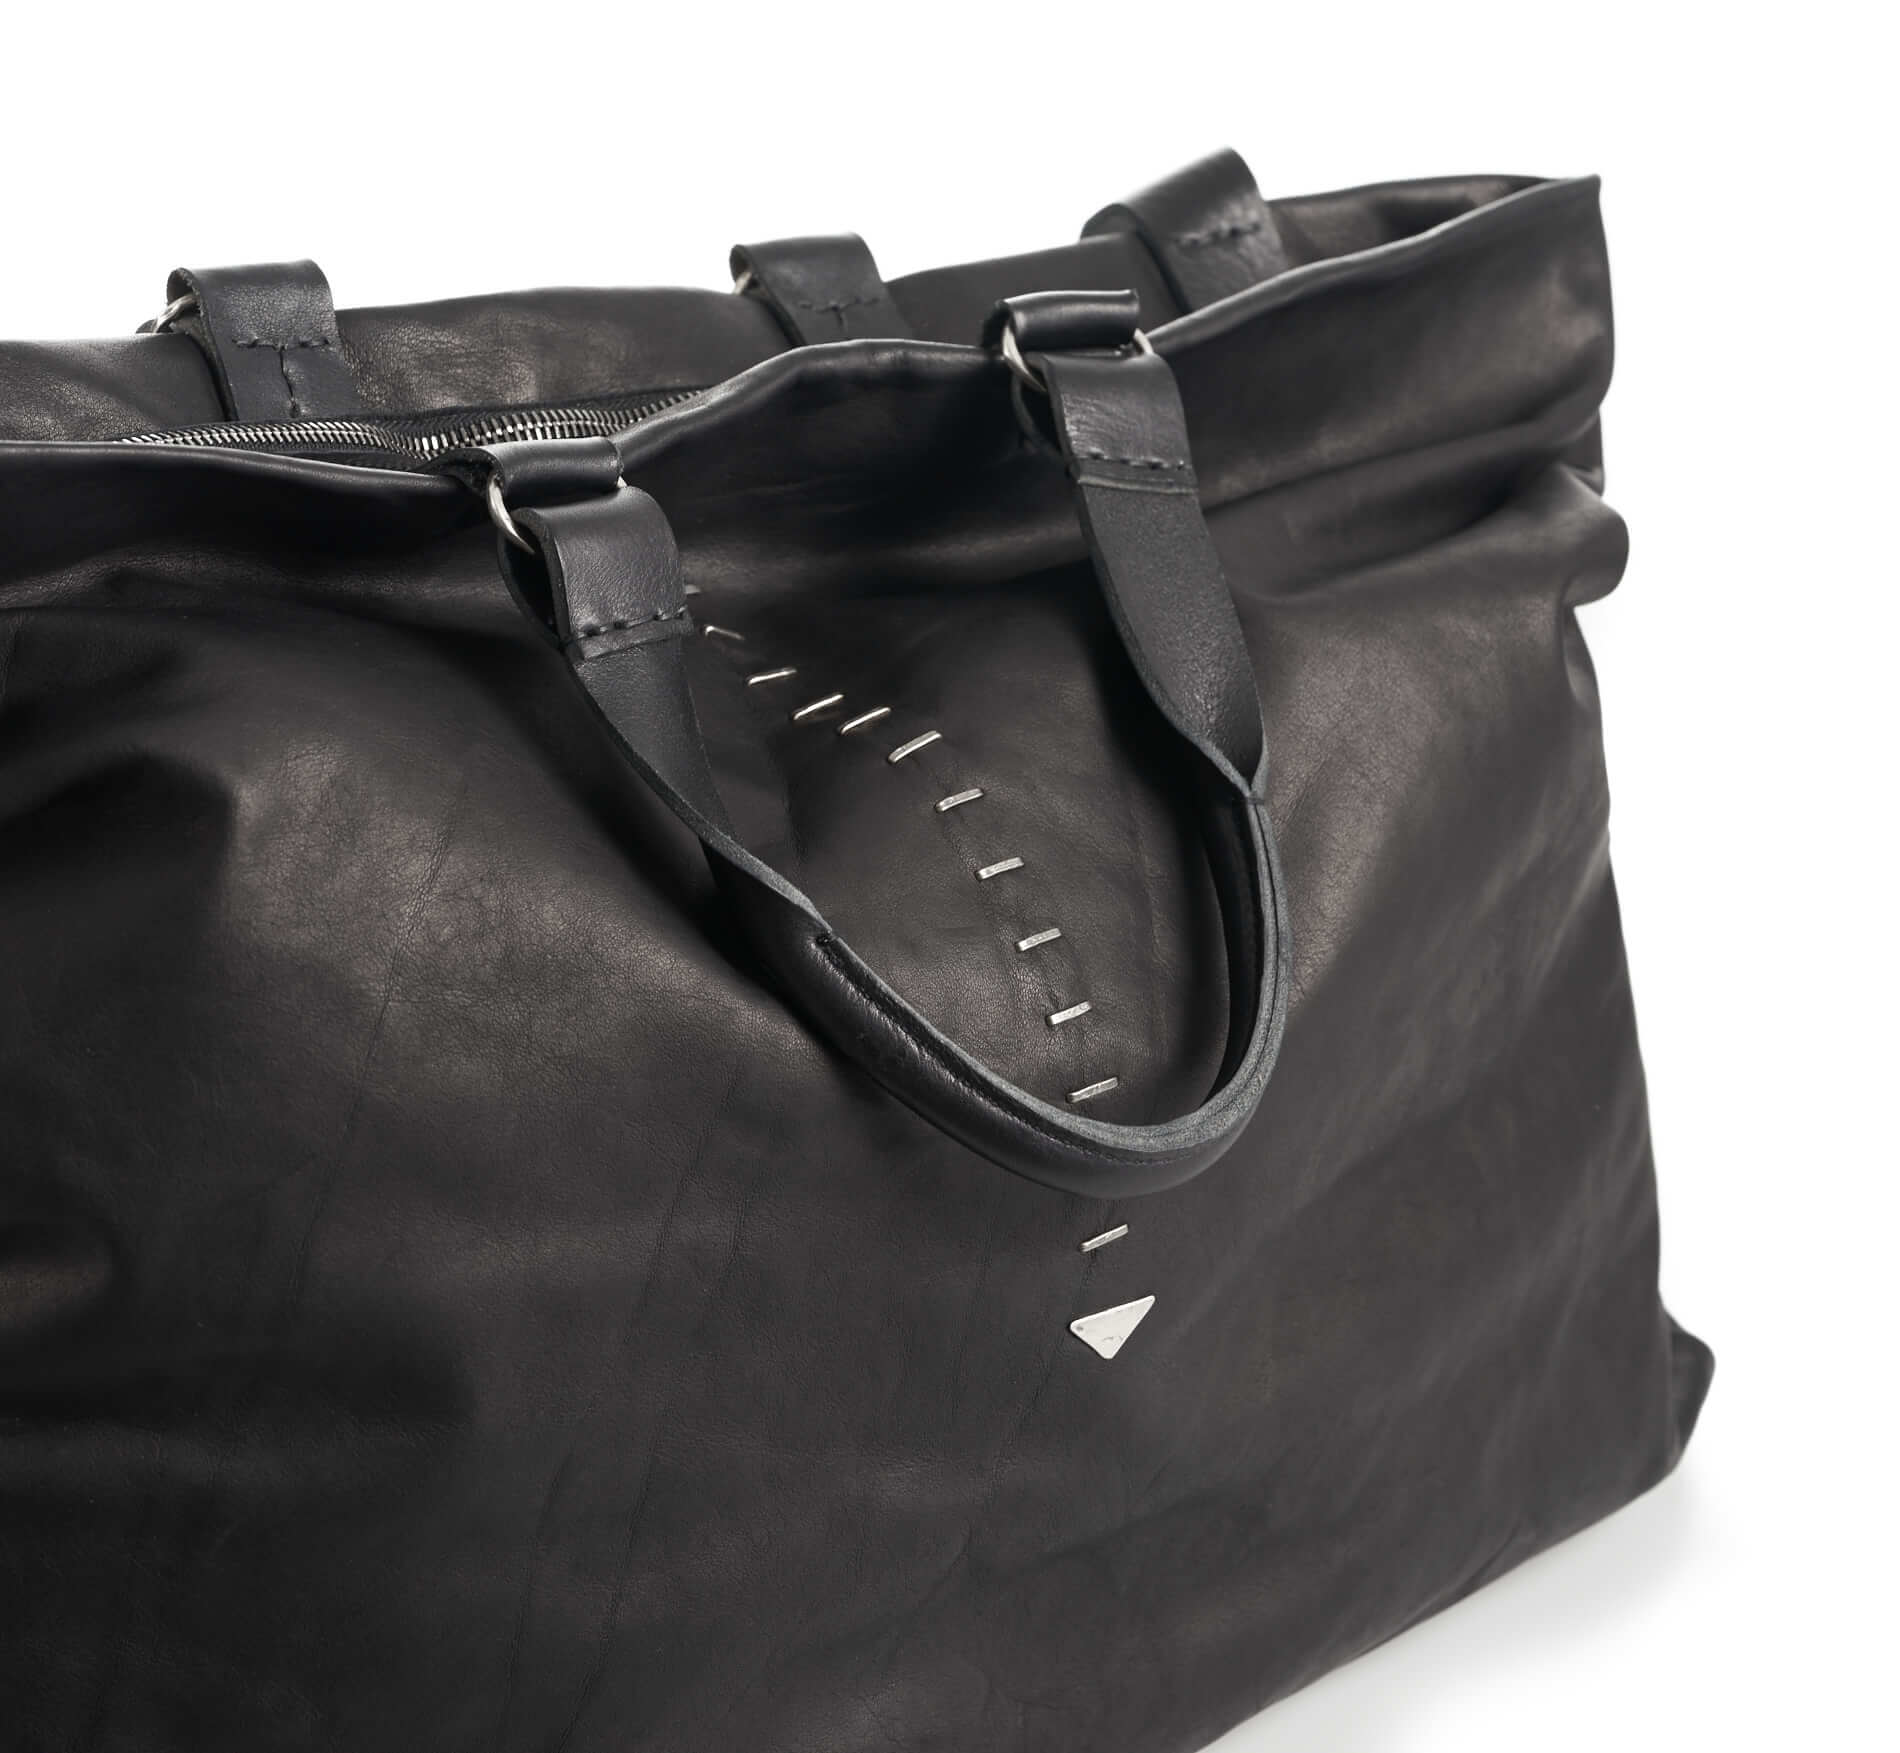 daniele basta leather and silver bags - kali foglie silver detail